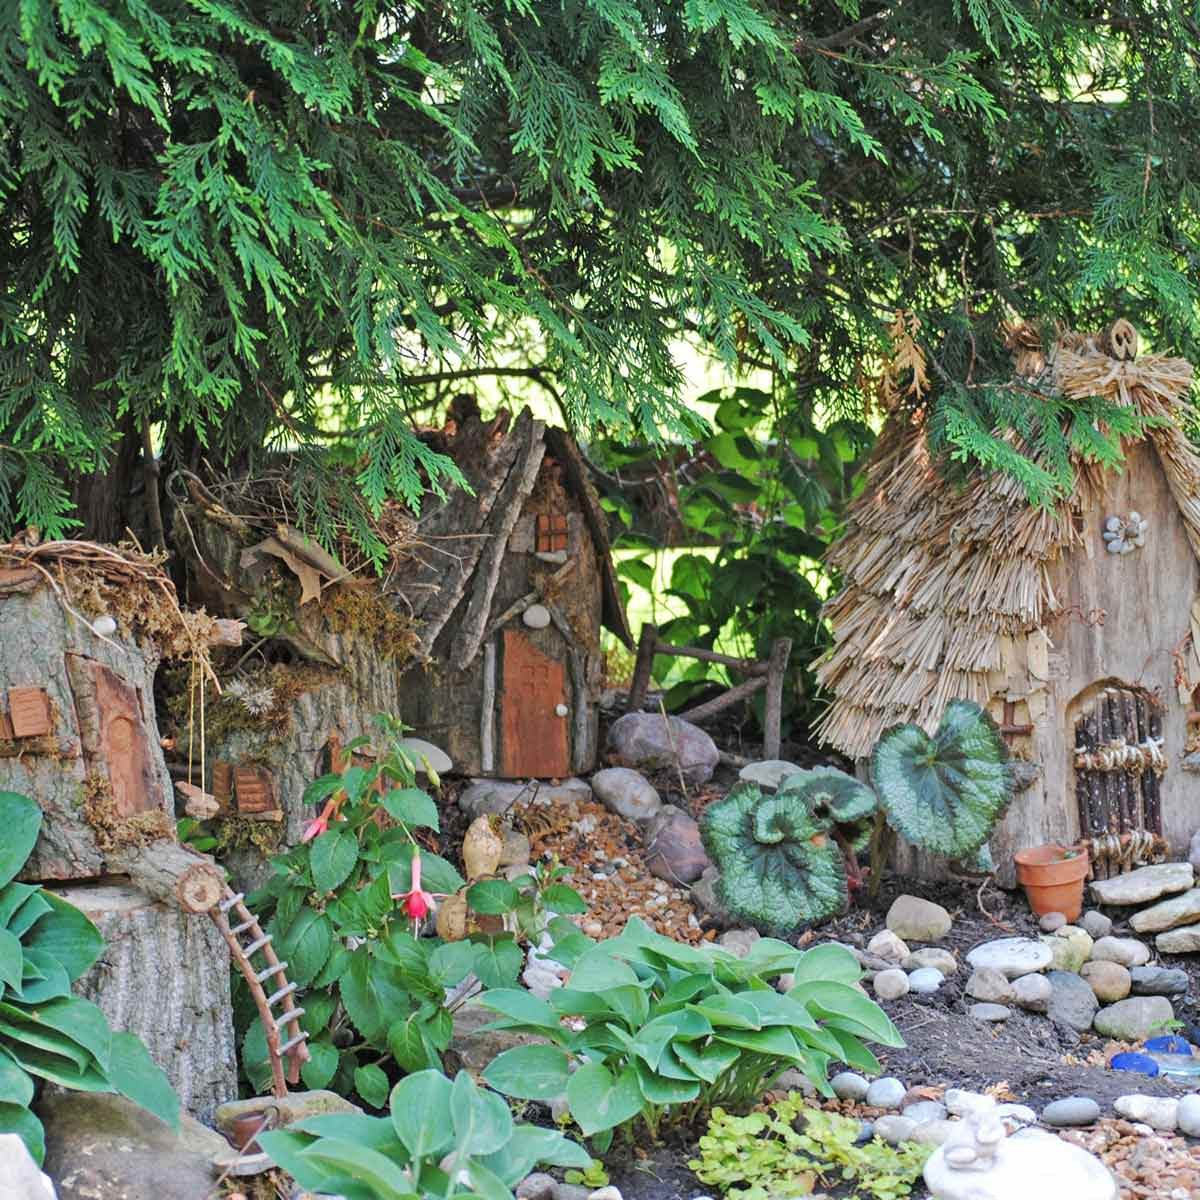 Fullsize Of Gnome Garden Village